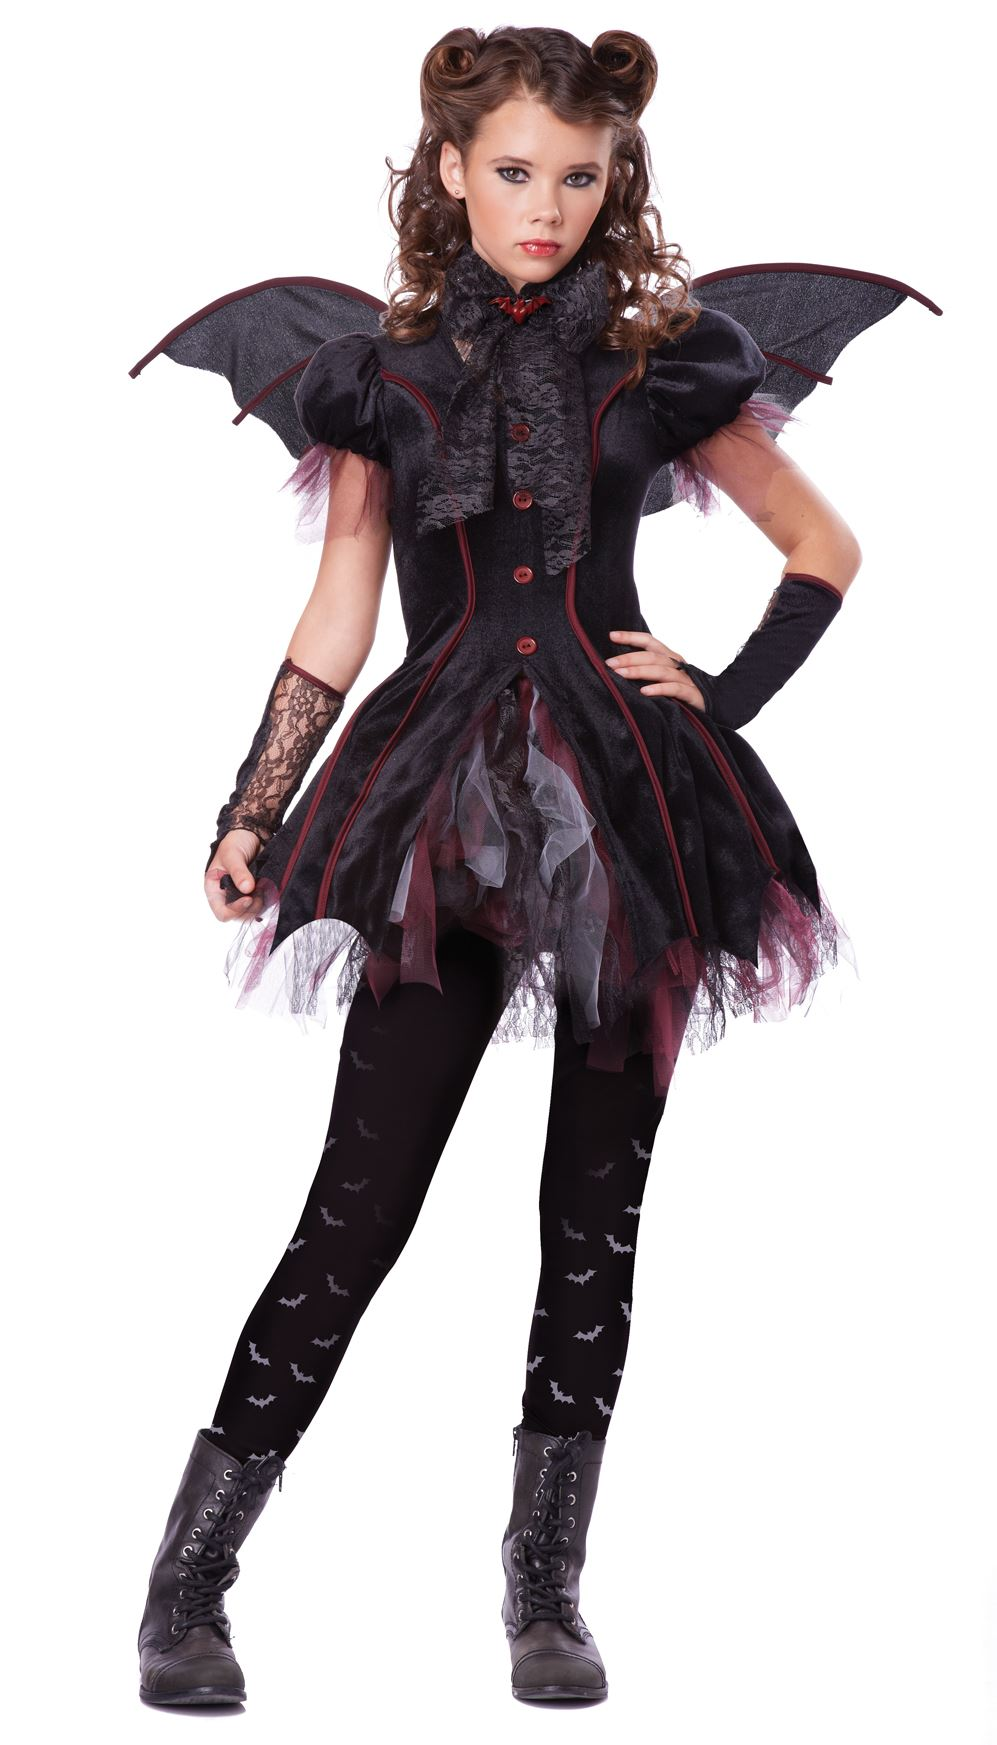 Kids Victorian V&iress Tween Girl Costume  sc 1 st  The Costume Land & Kids Victorian Vampiress Tween Girl Costume | $45.99 | The Costume Land